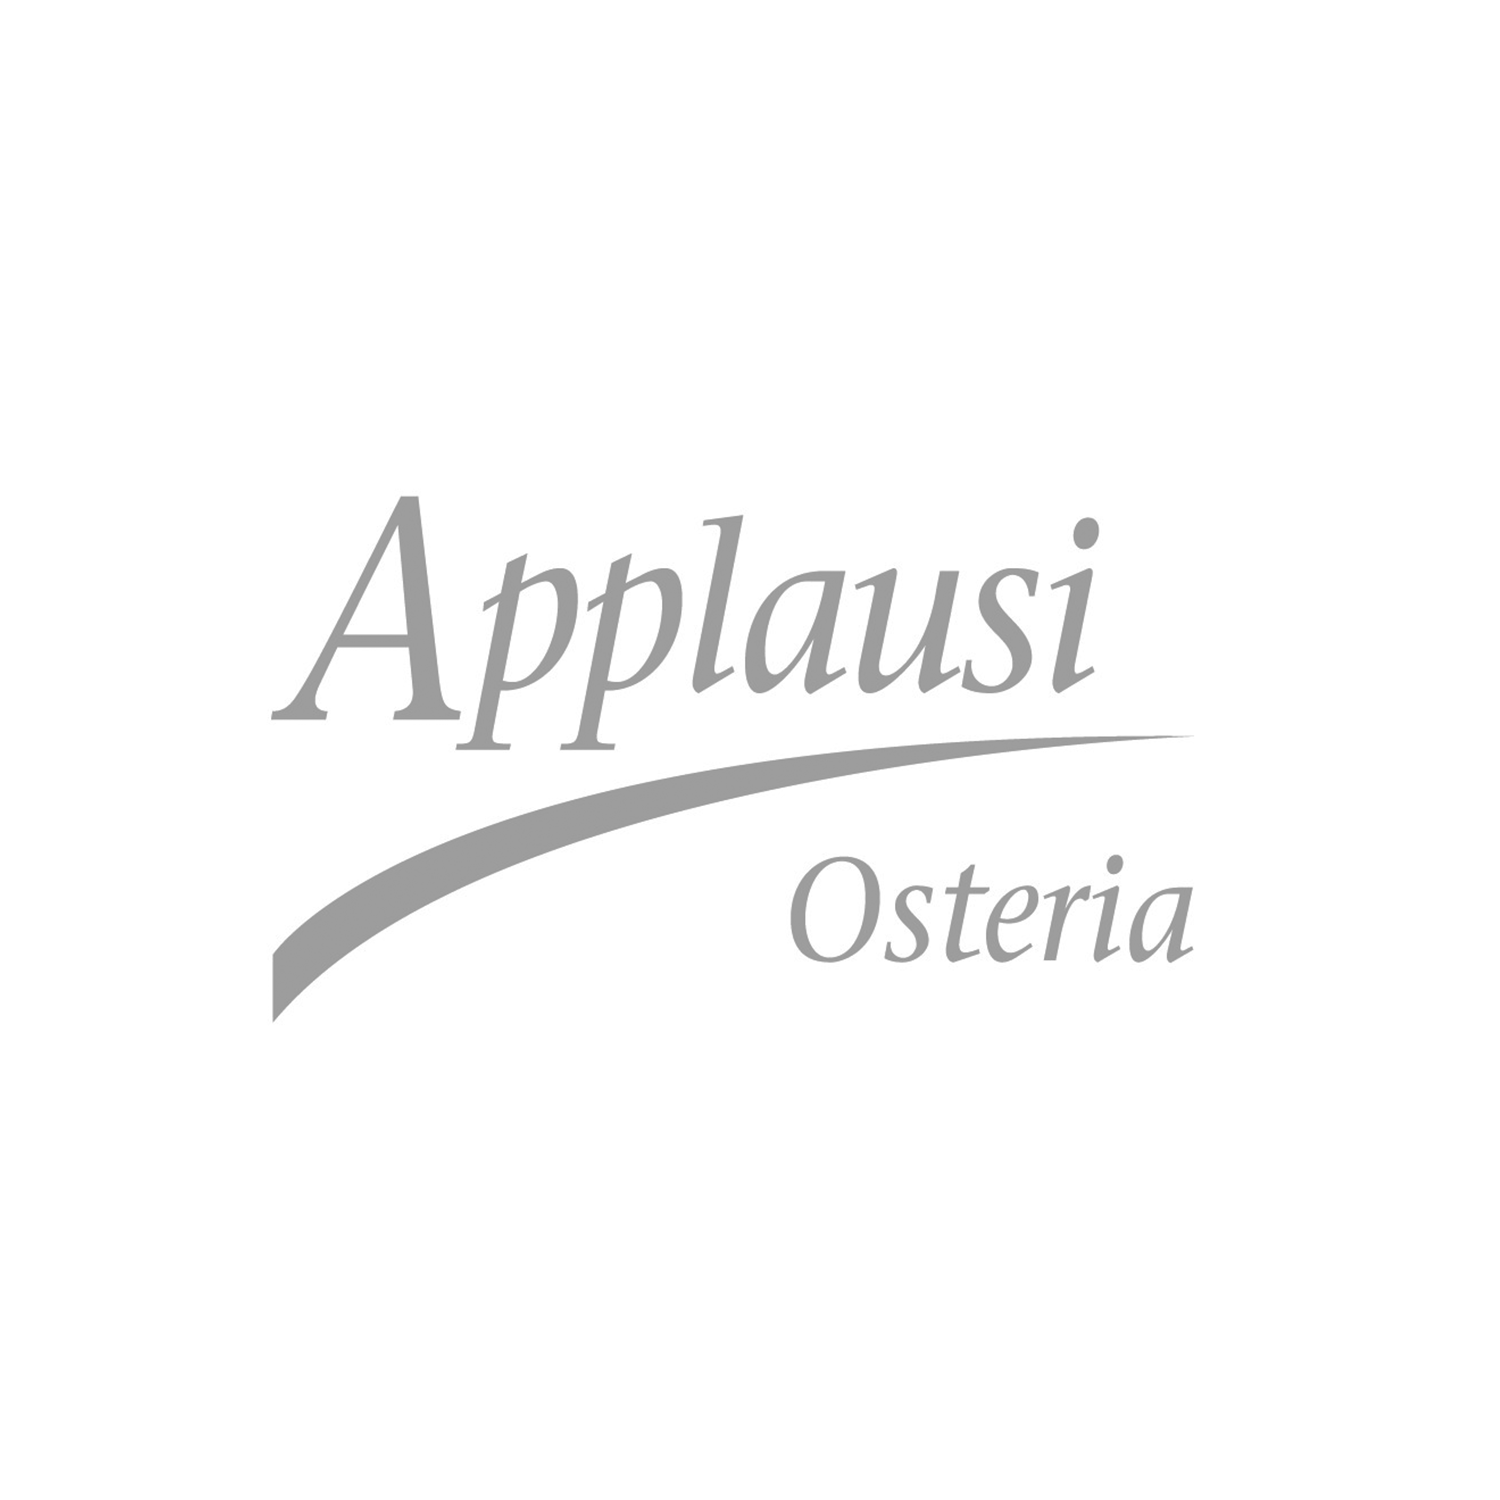 Applausi_logo.png